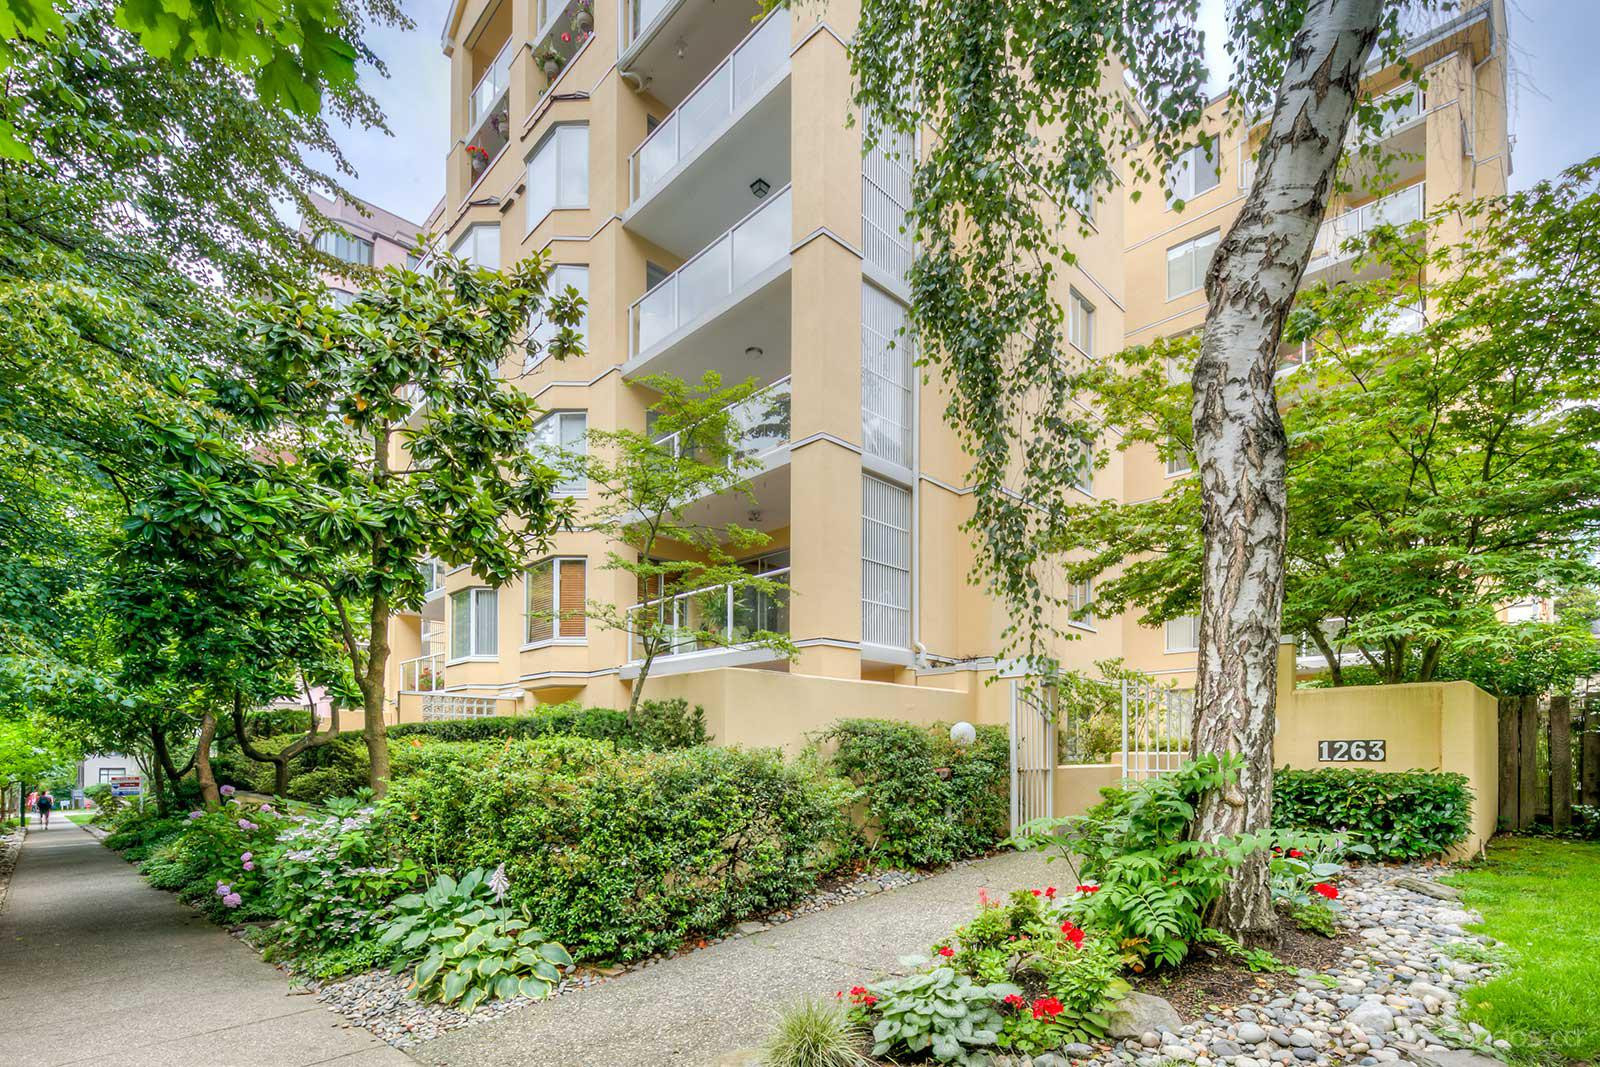 Westpoint Terrace at 1263 Barclay St, Vancouver 0